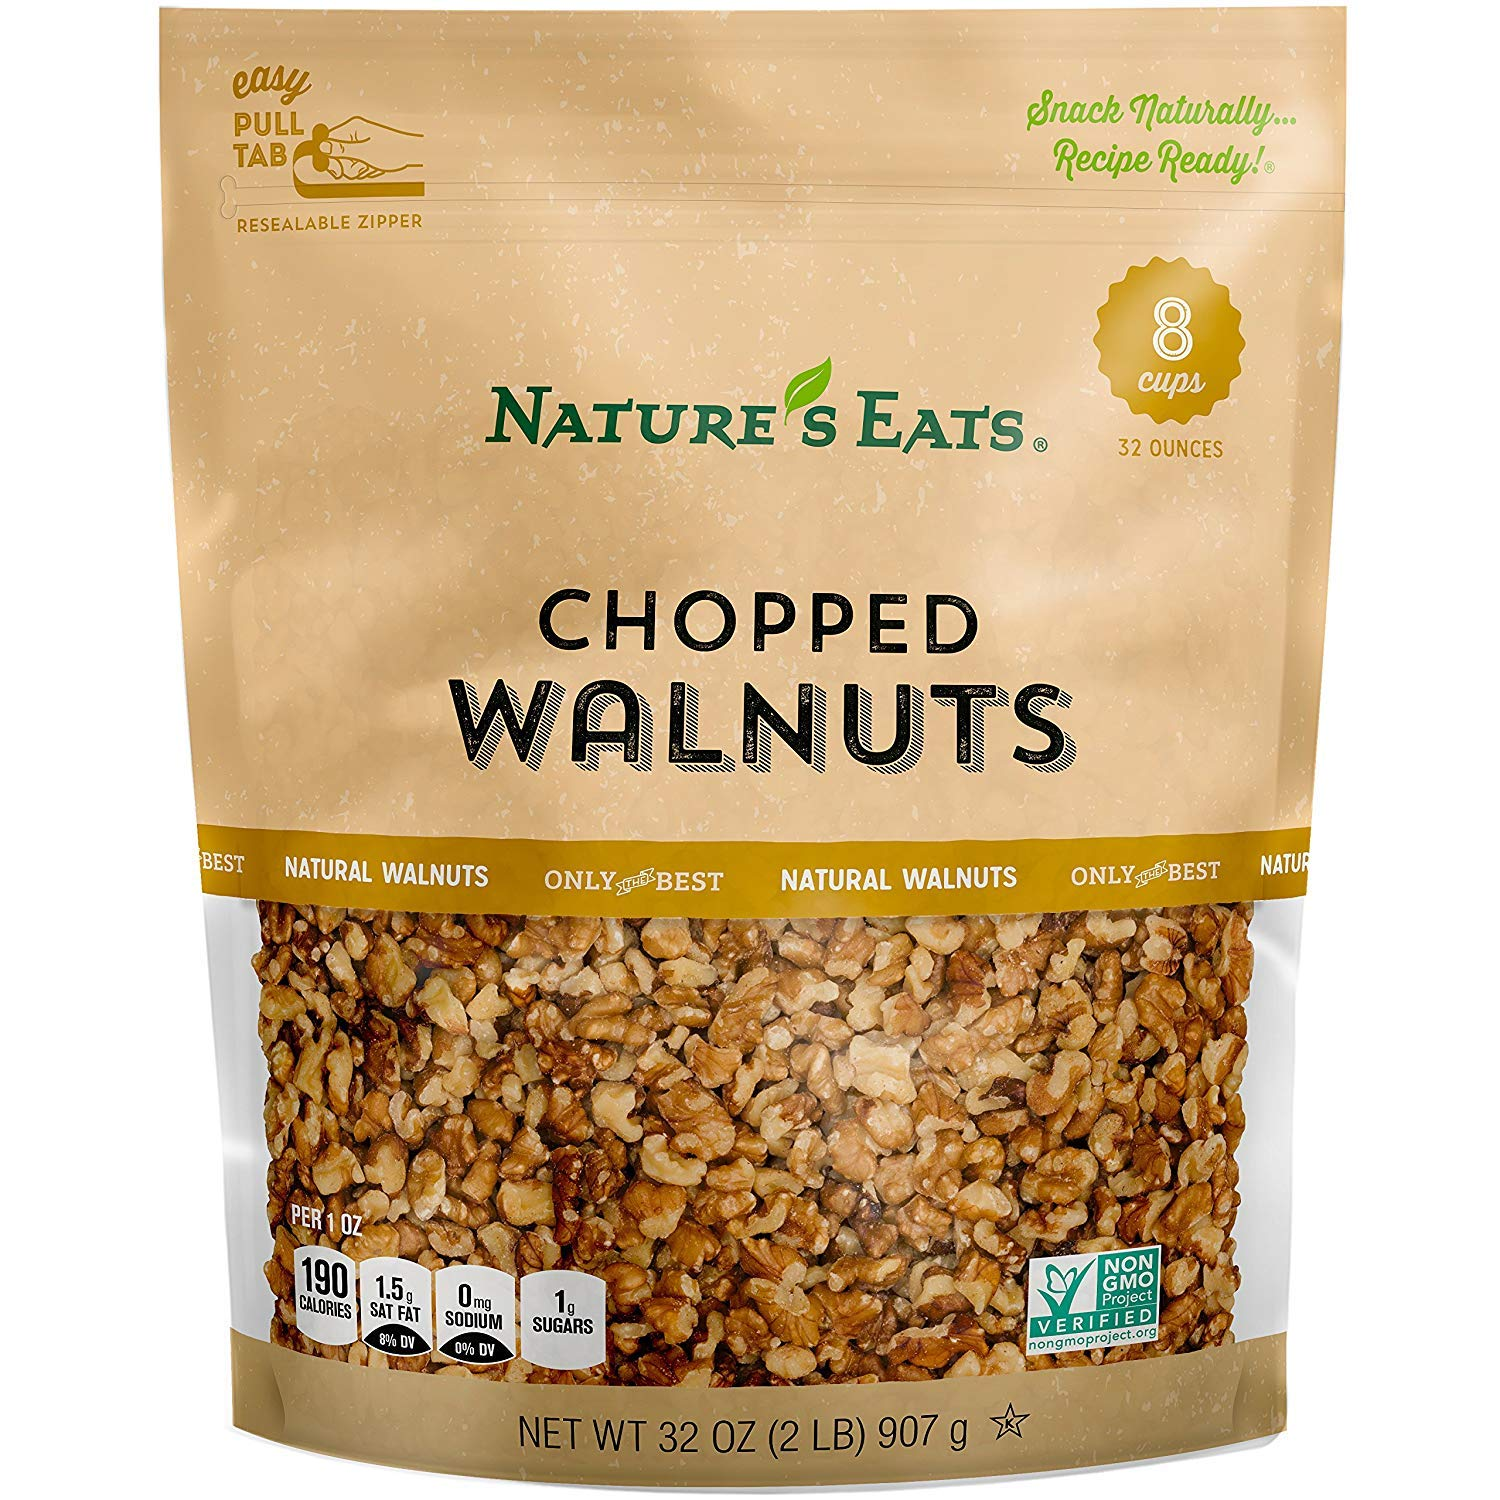 Nature's Eats Chopped Walnuts, 32 Ounce (Pack of 2) by Nature's Eats